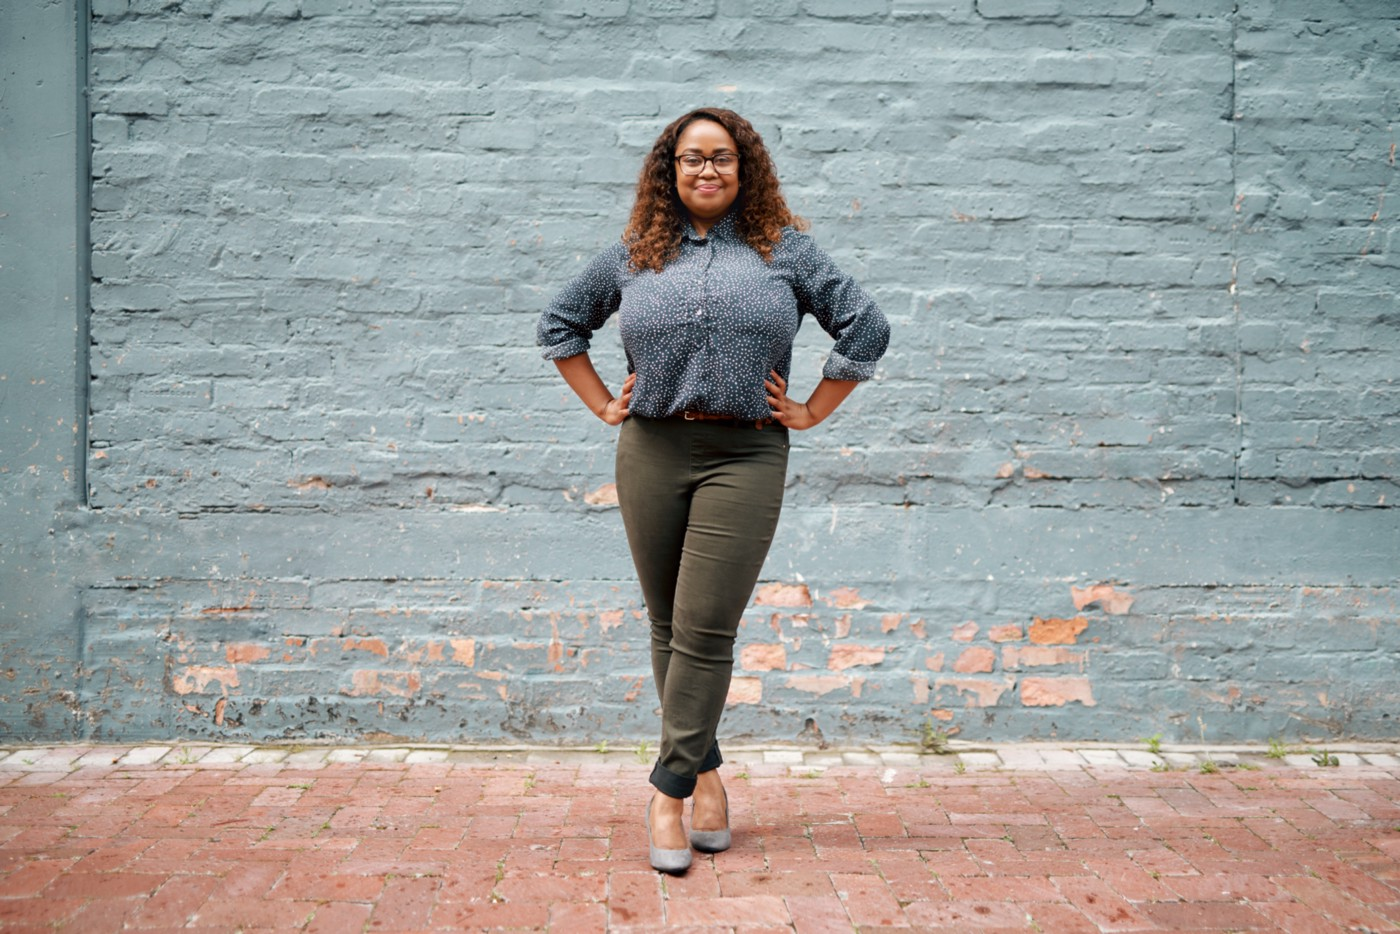 A photo of a confident black woman standing against a blue brick background in a power pose.